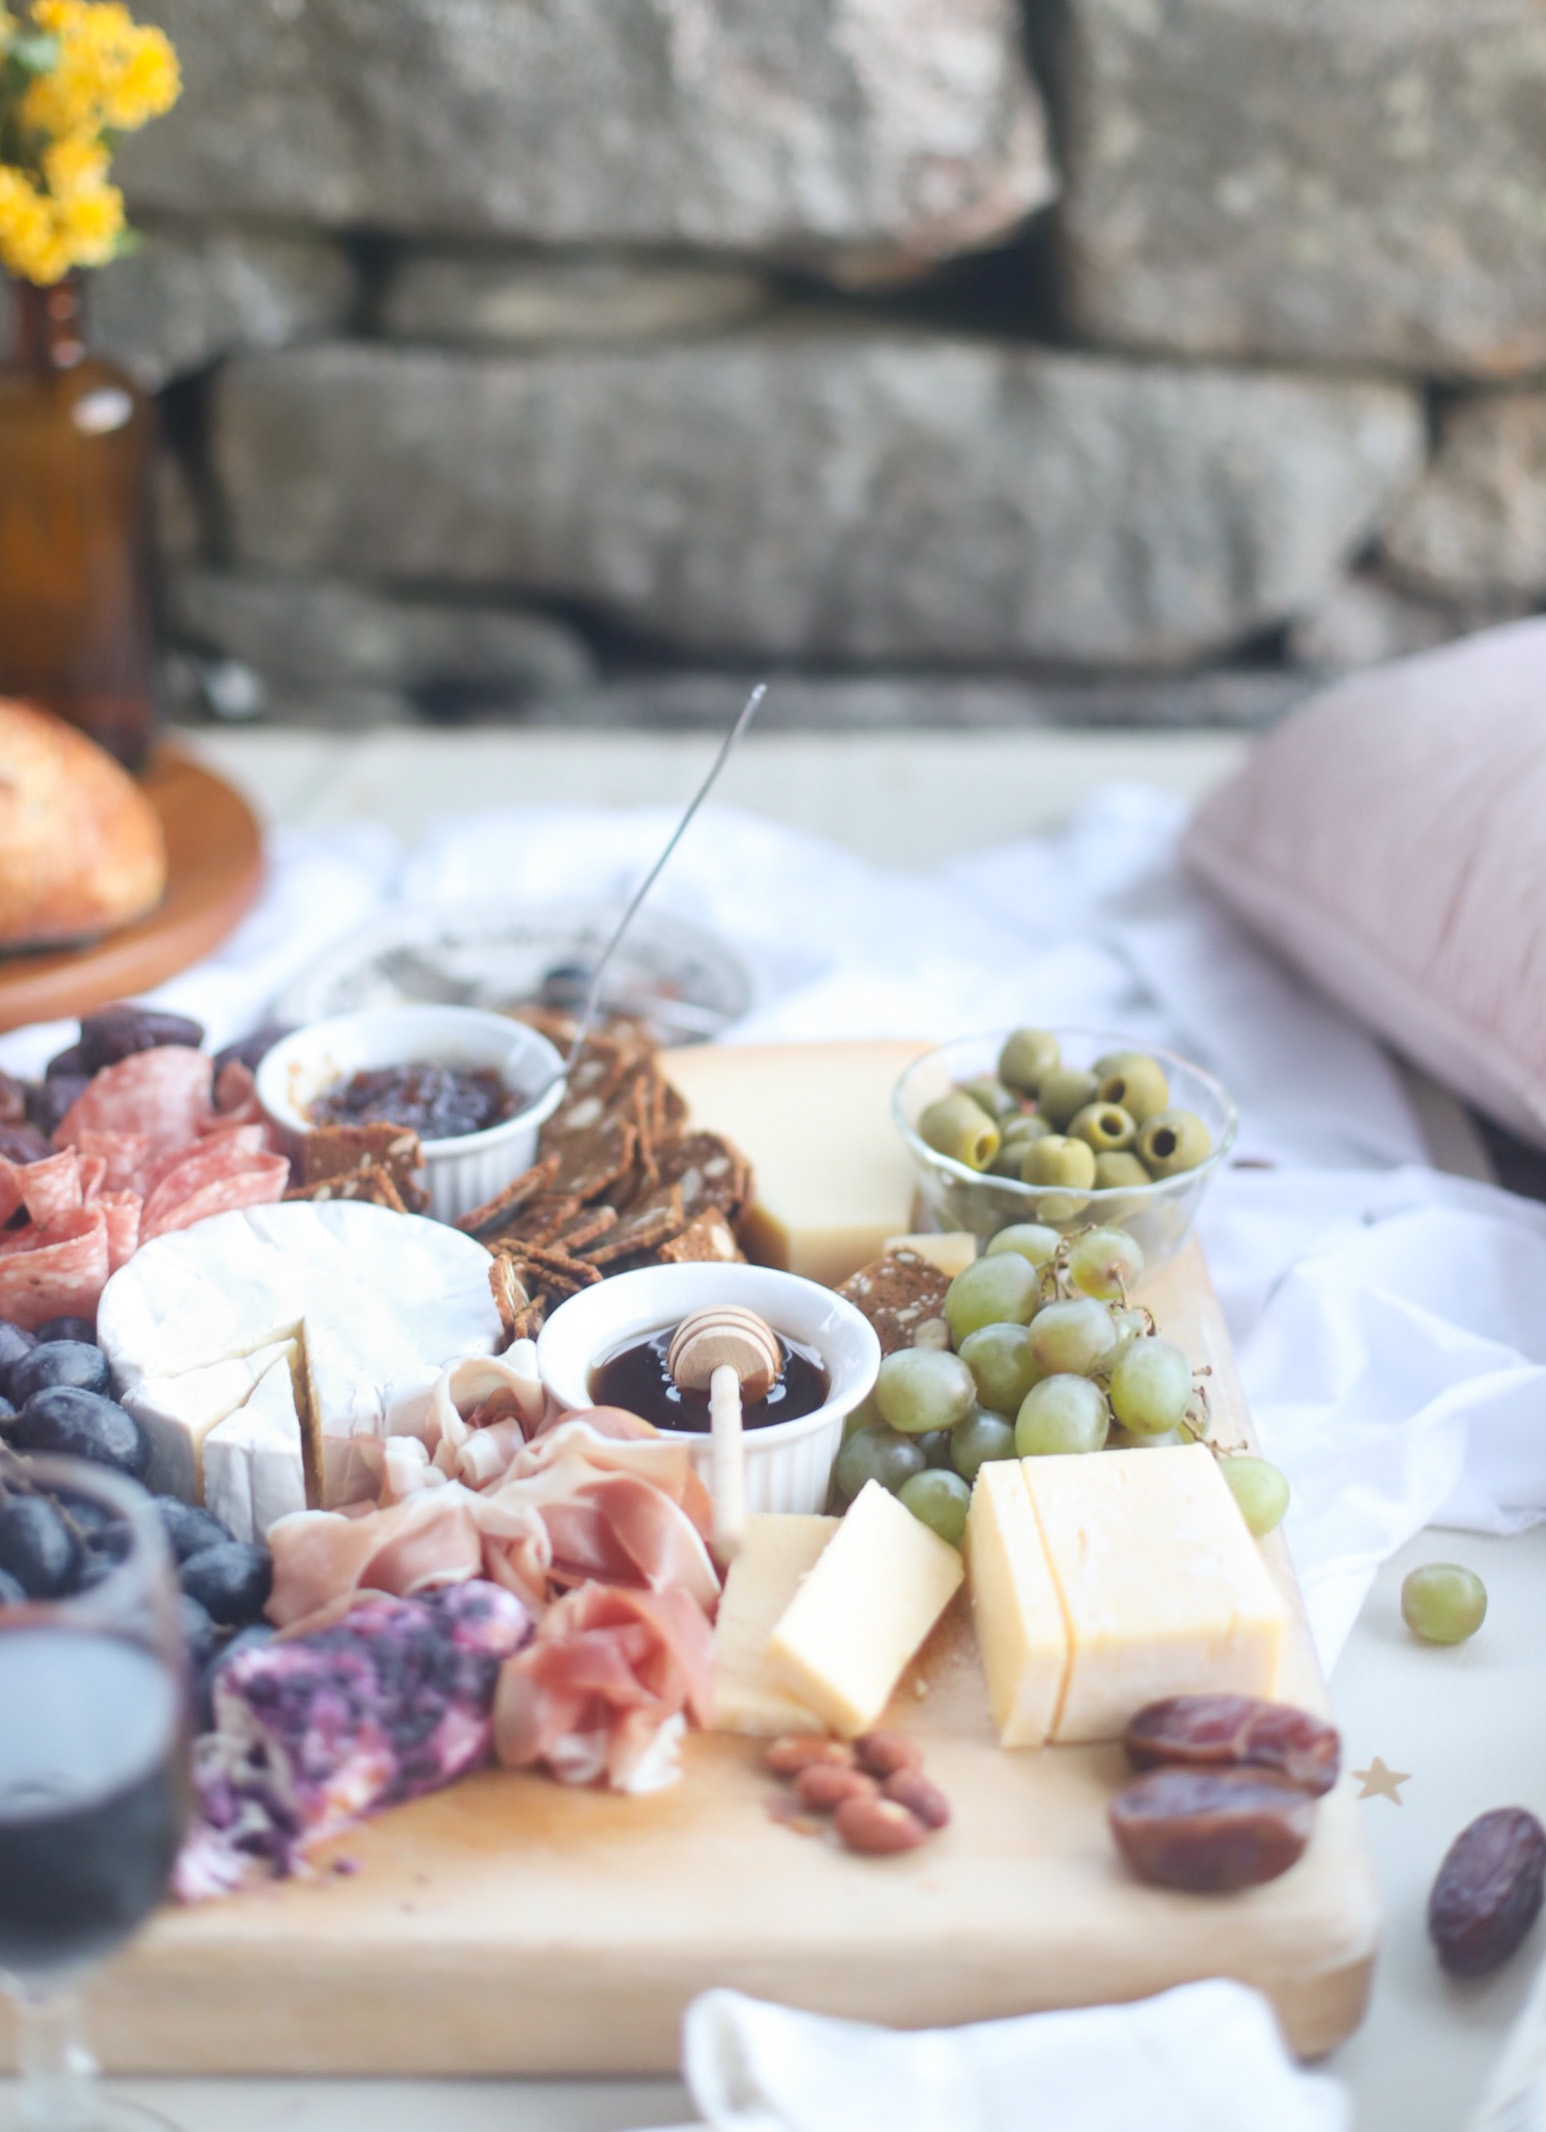 Charcuterie and Wine for date night porch picnic at home